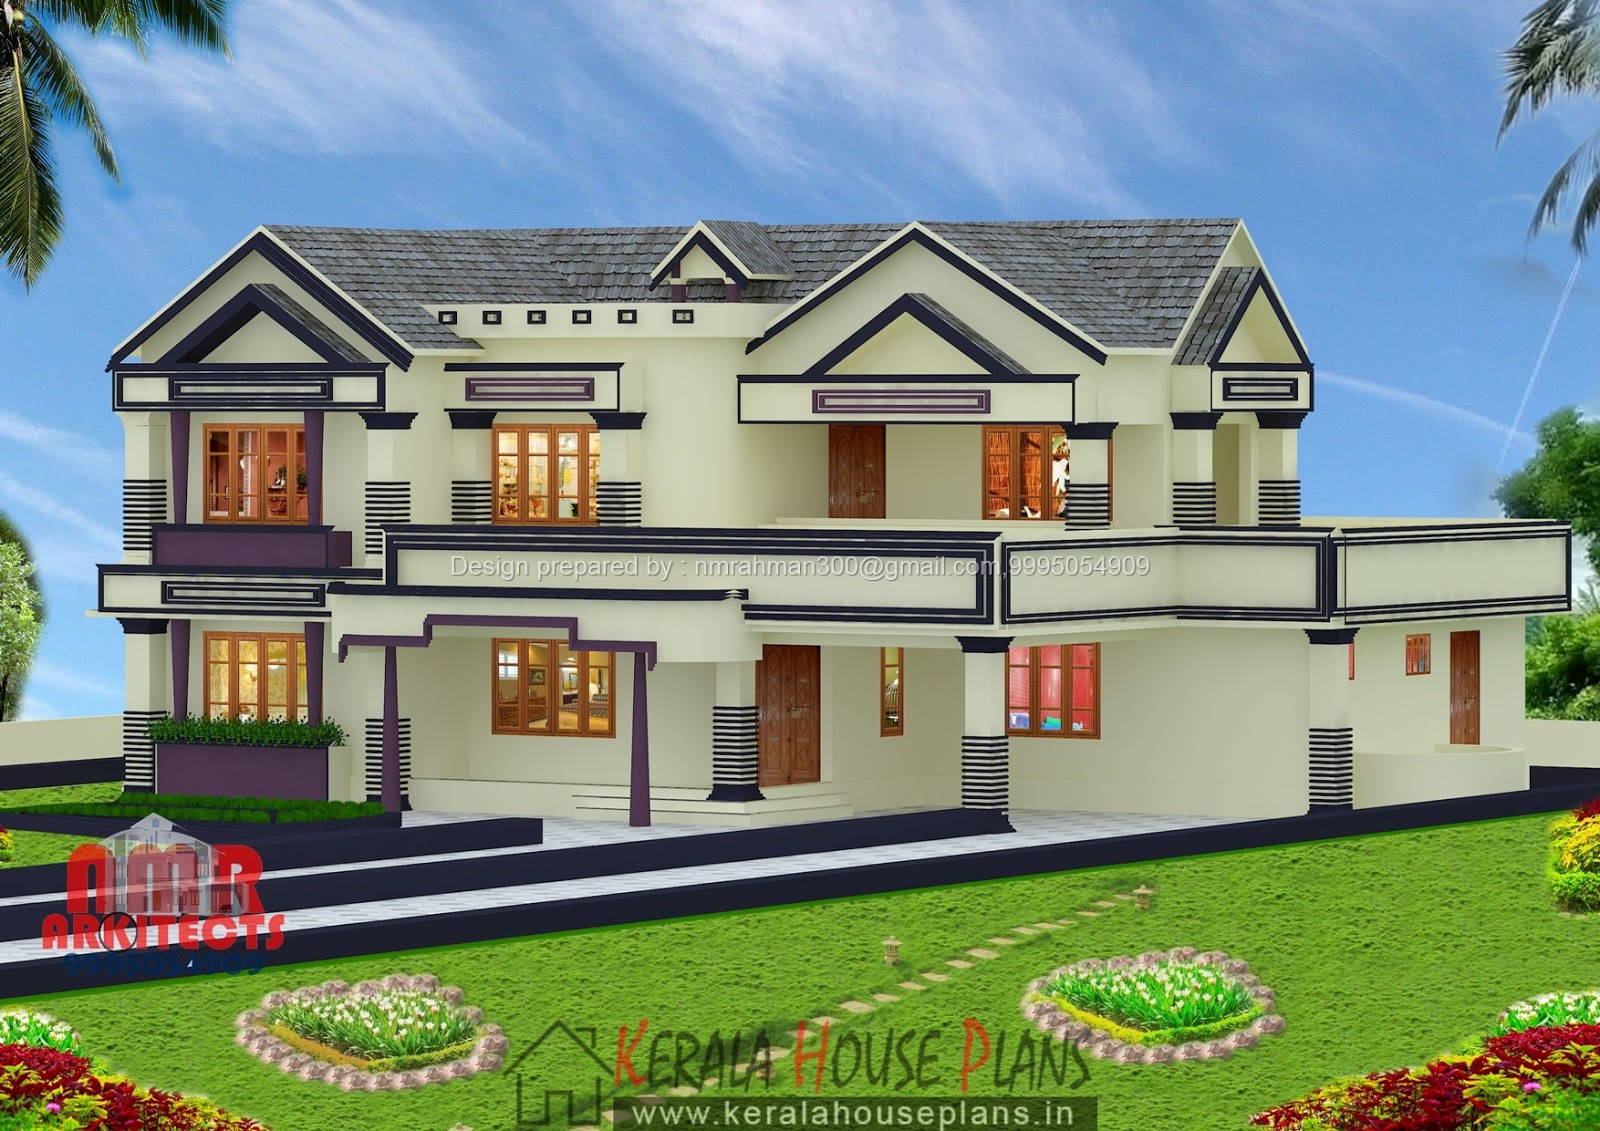 Kerala house plans above 3000 sq ft kerala house plans 3000 square foot homes